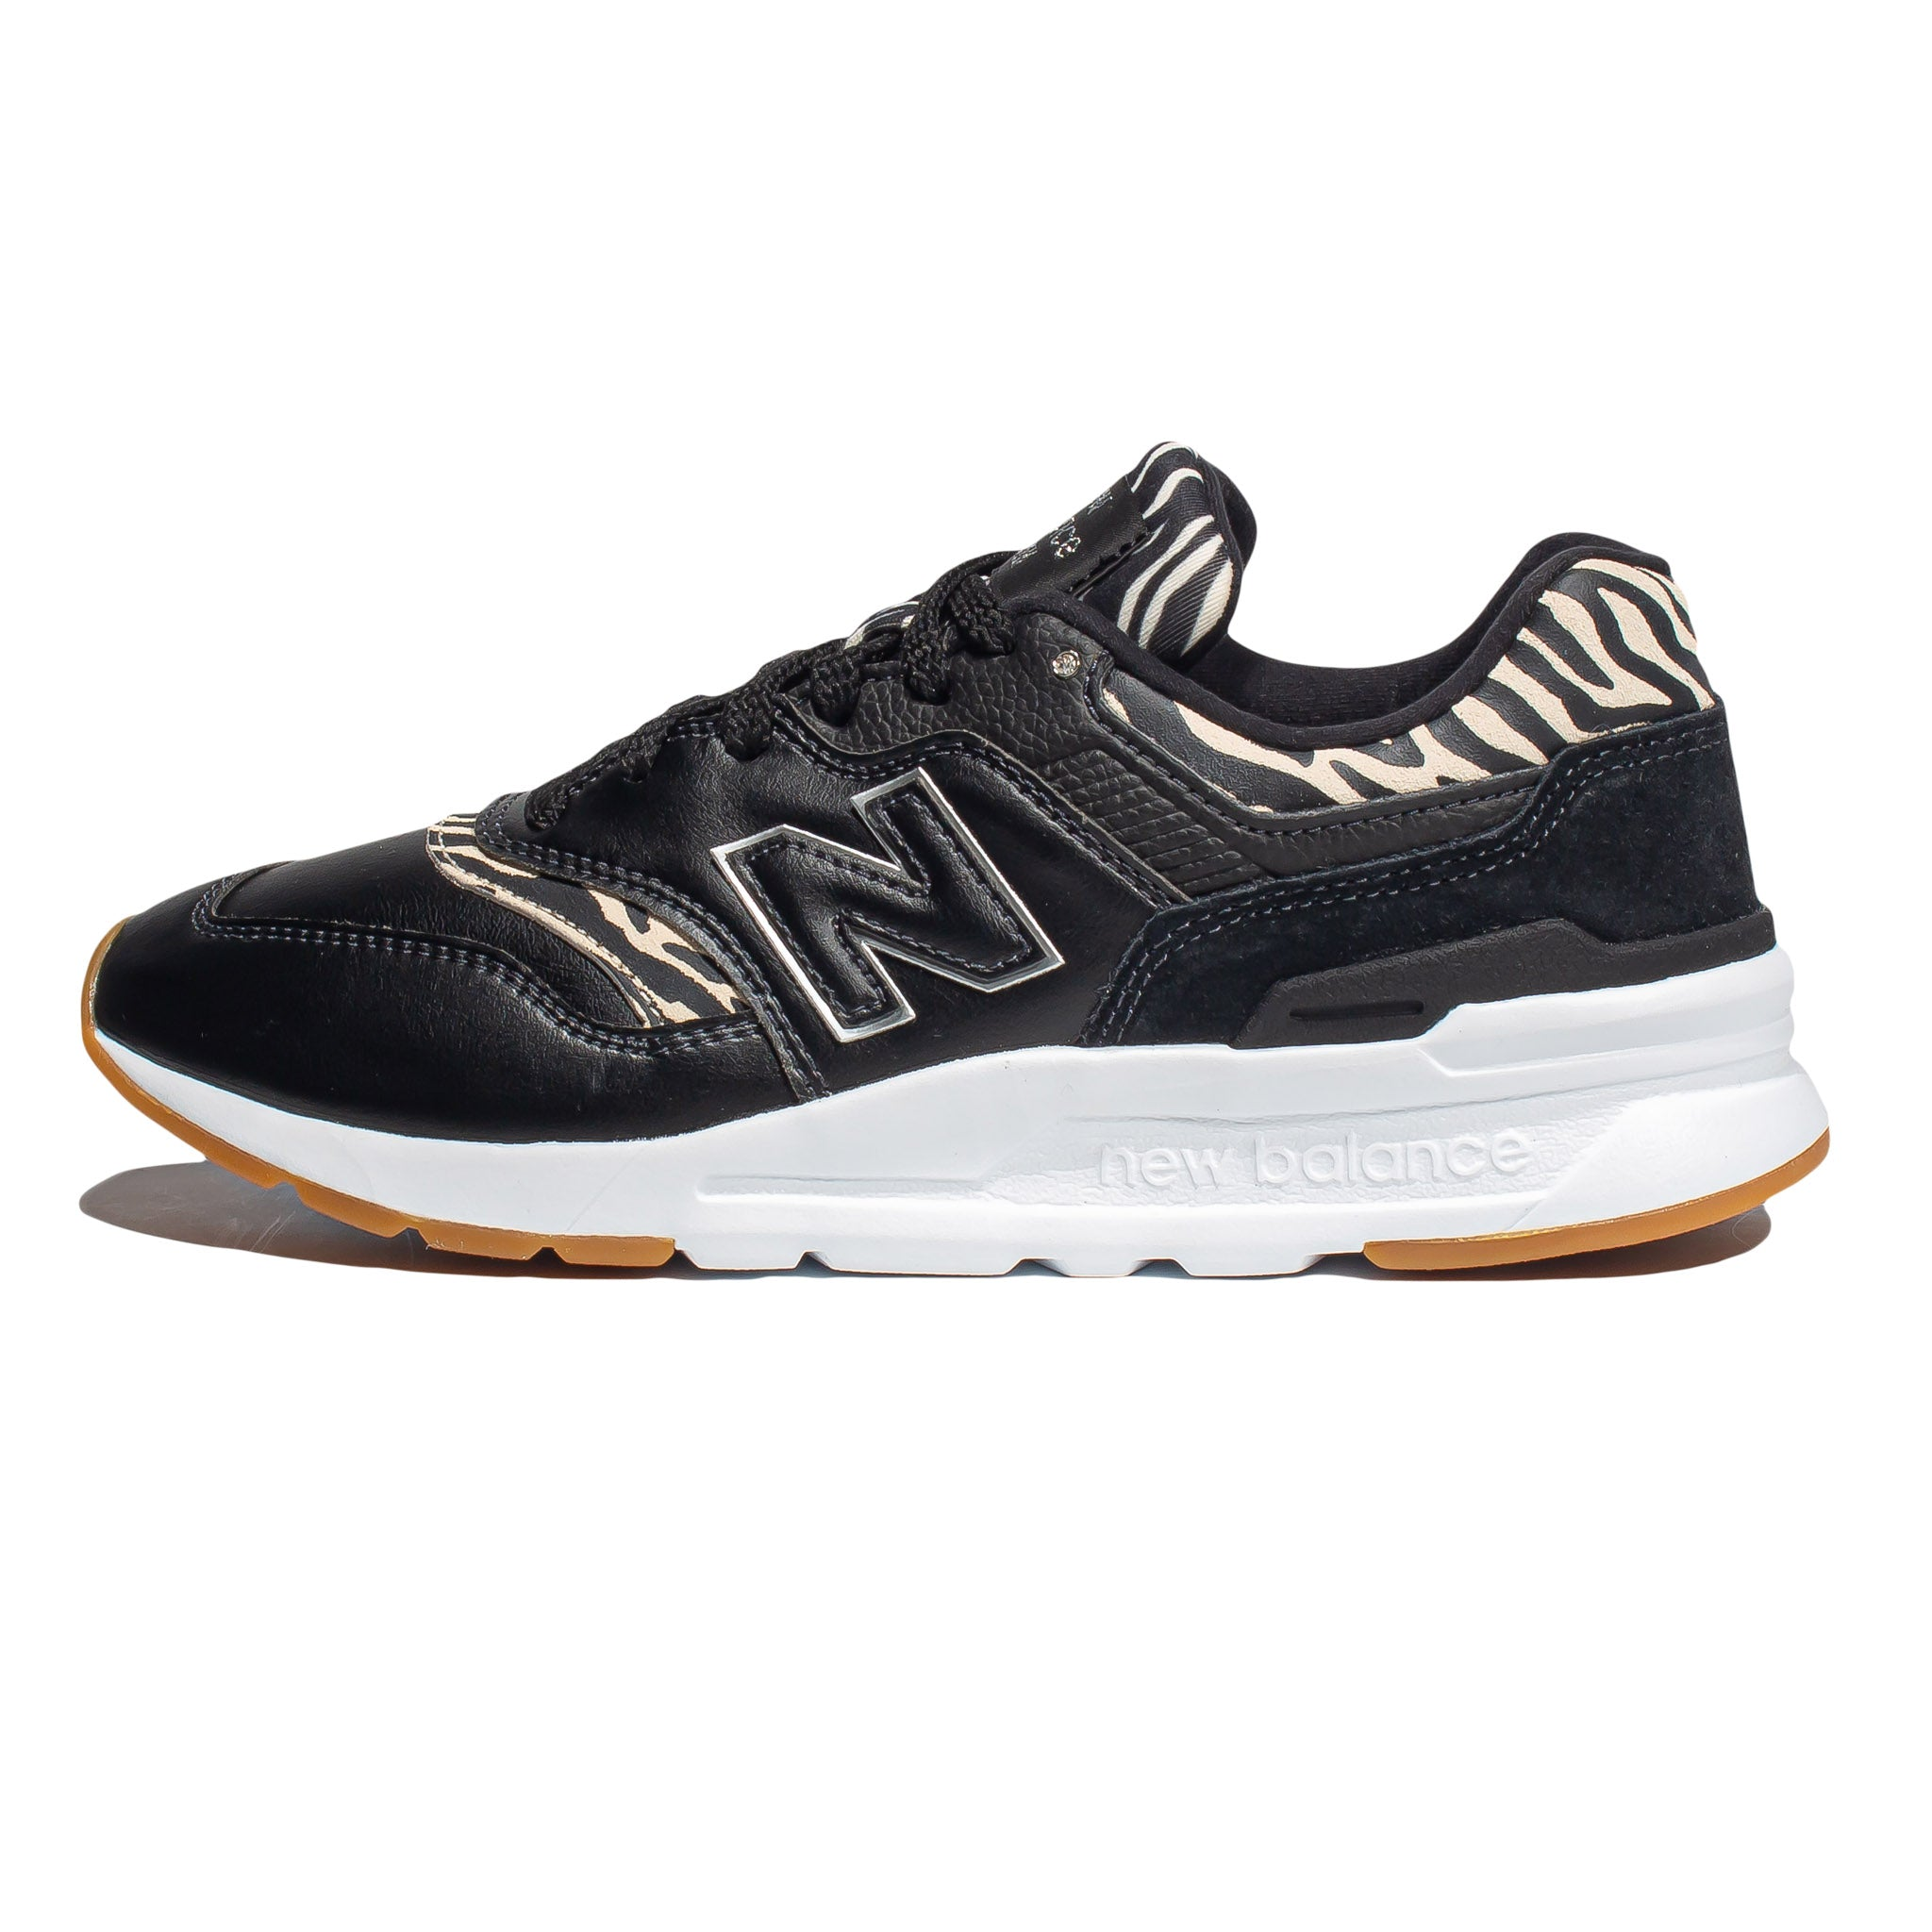 New Balance CW997HCI 'Animal Pack'